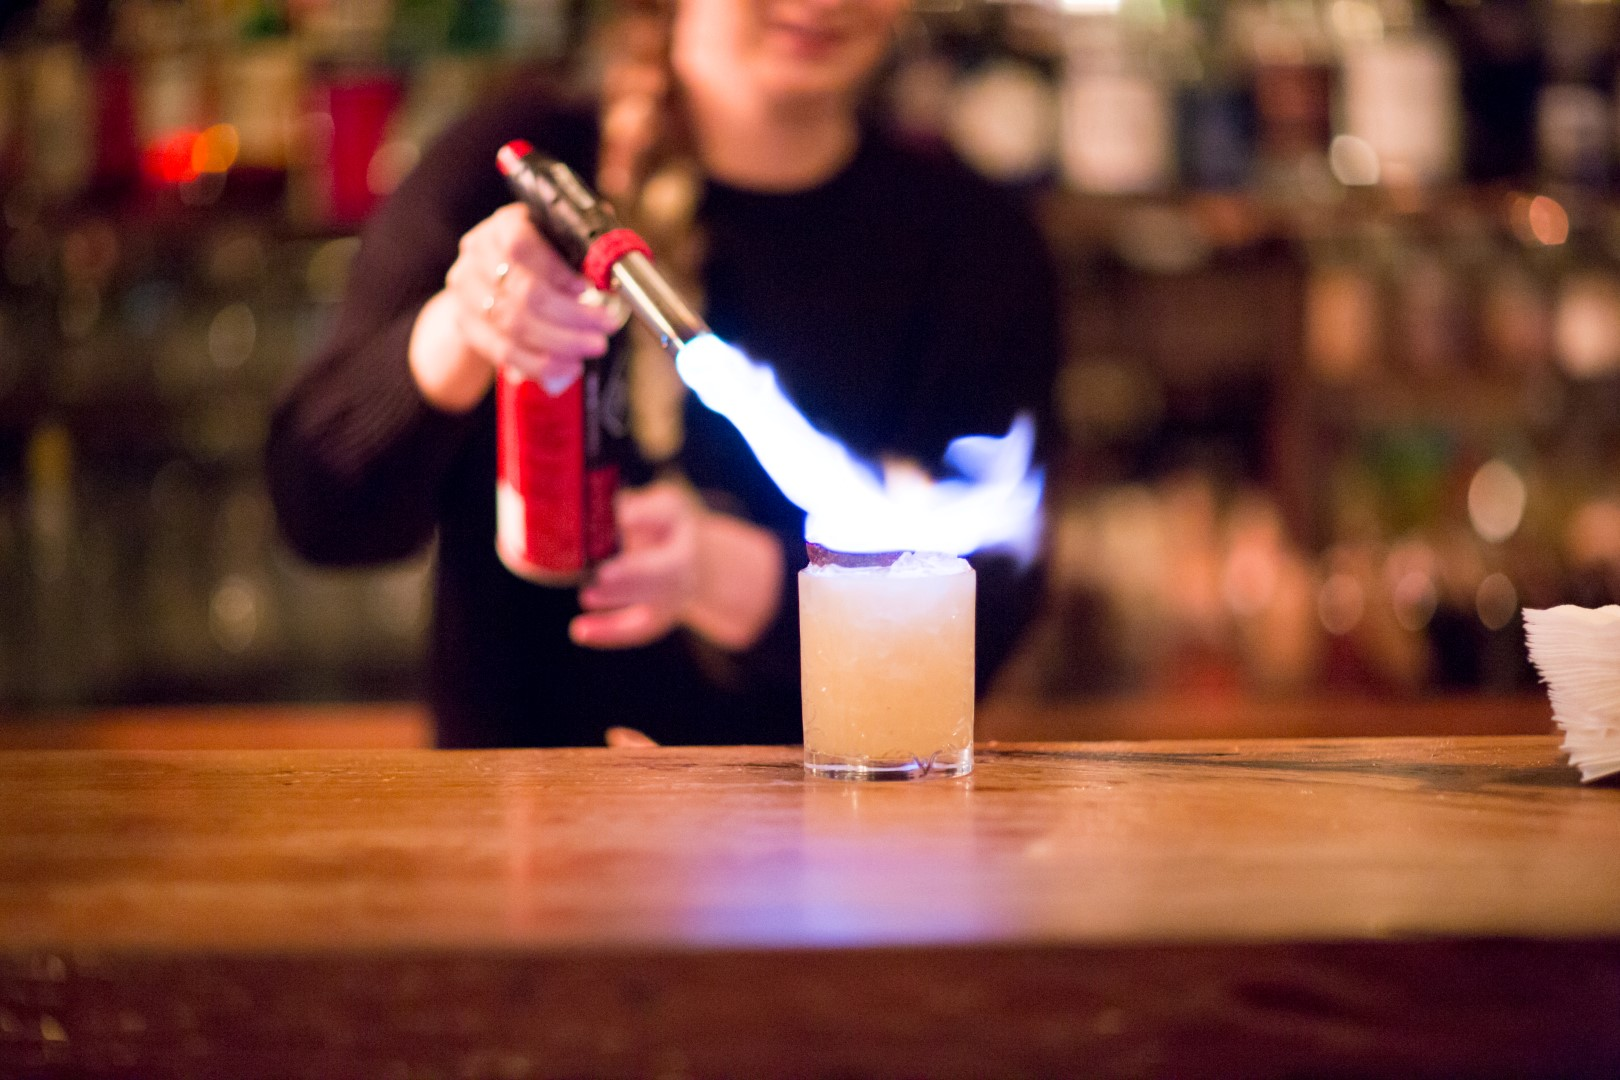 A woman at a bar holding a blowtorch over a cocktail